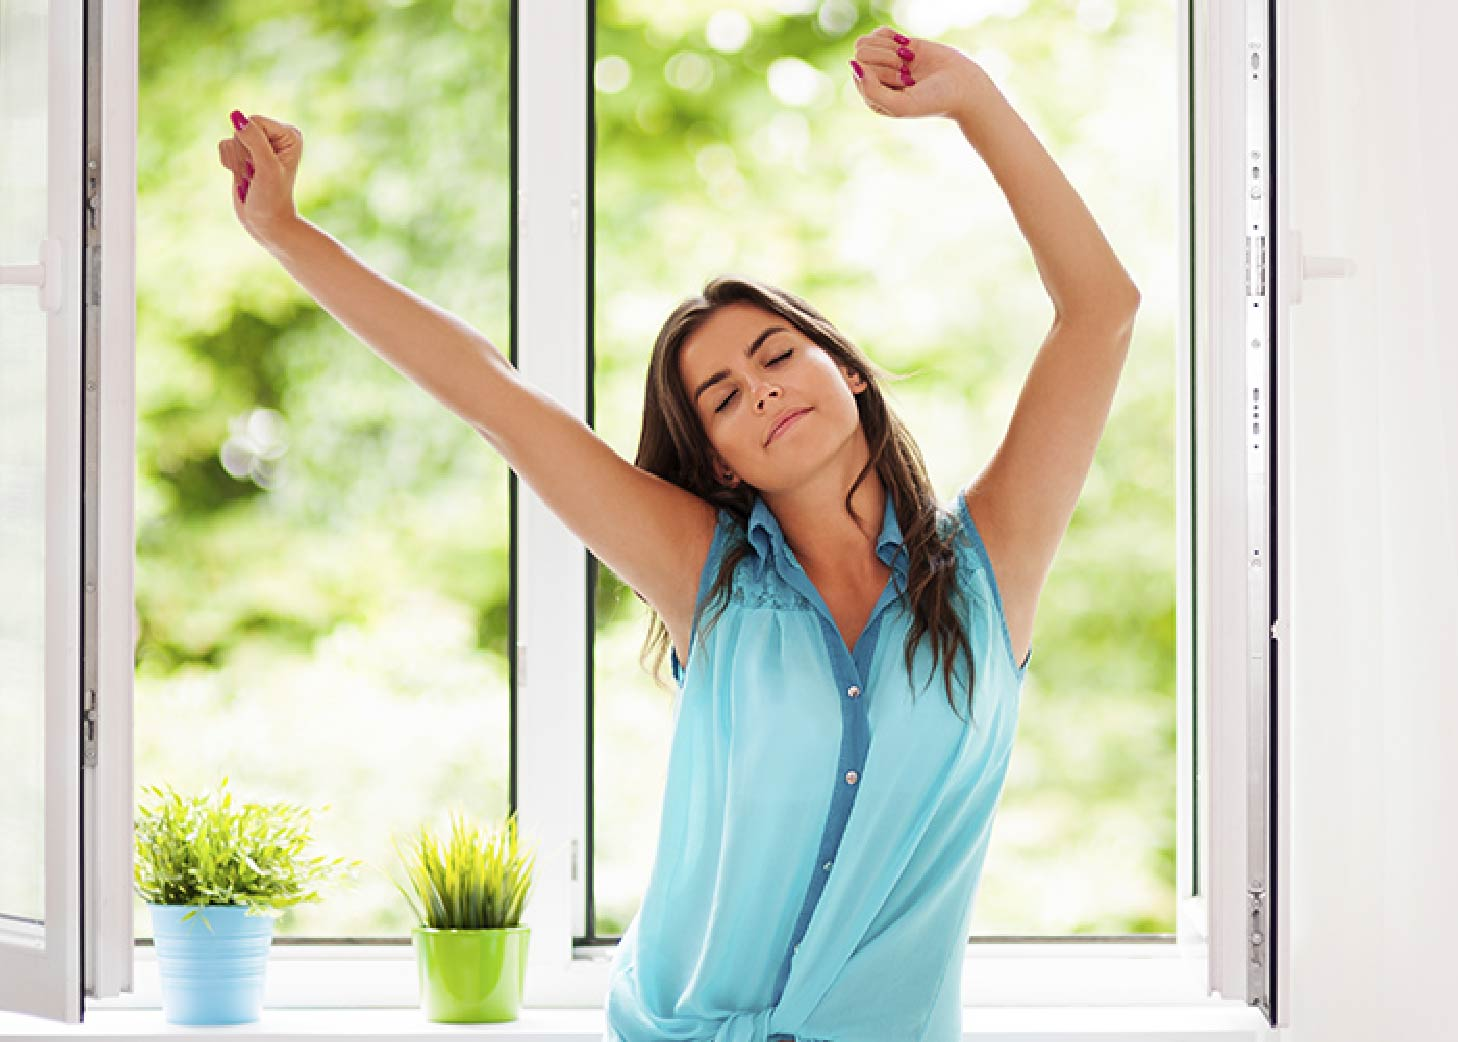 Woman in blue shirt stretching for fresh air